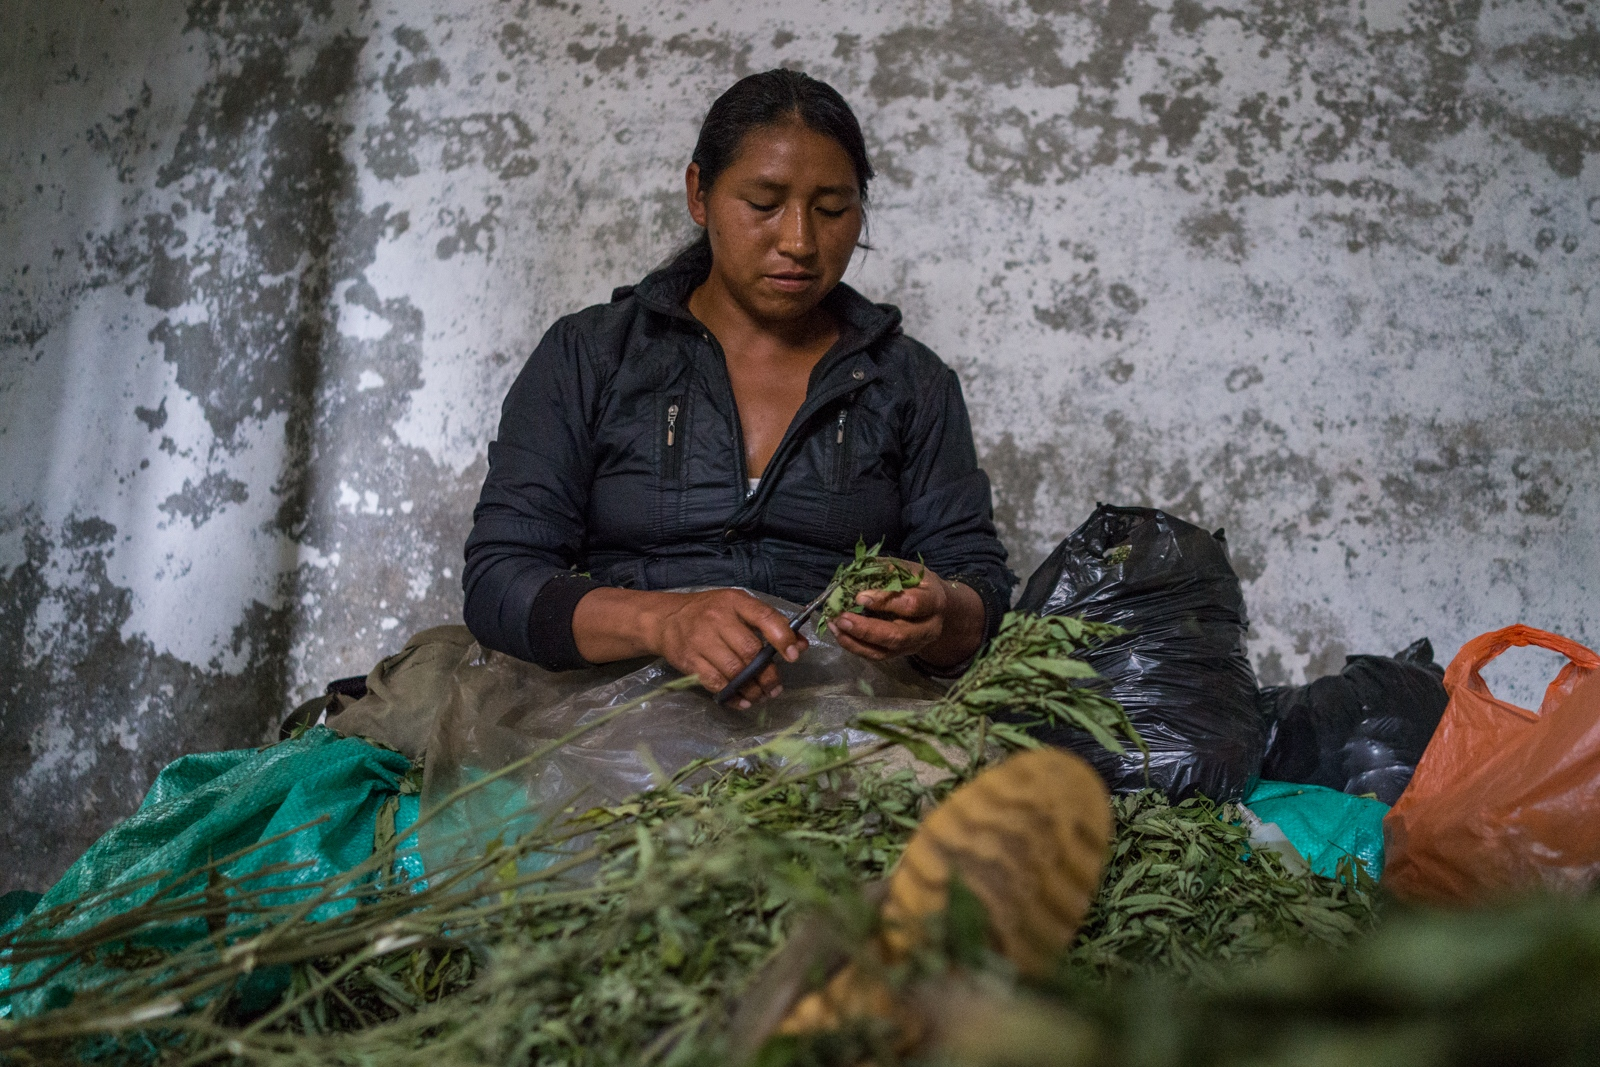 Maria cuts marijuana leaves out of the buds, clients only buy buds qithoutthe leaves which decreases the weight but gives more quality to the marijuana, cutting leaves out of marijuana buds is a job only for kids and women in Toribio since man decide to be more in charge of the sales and plantation.